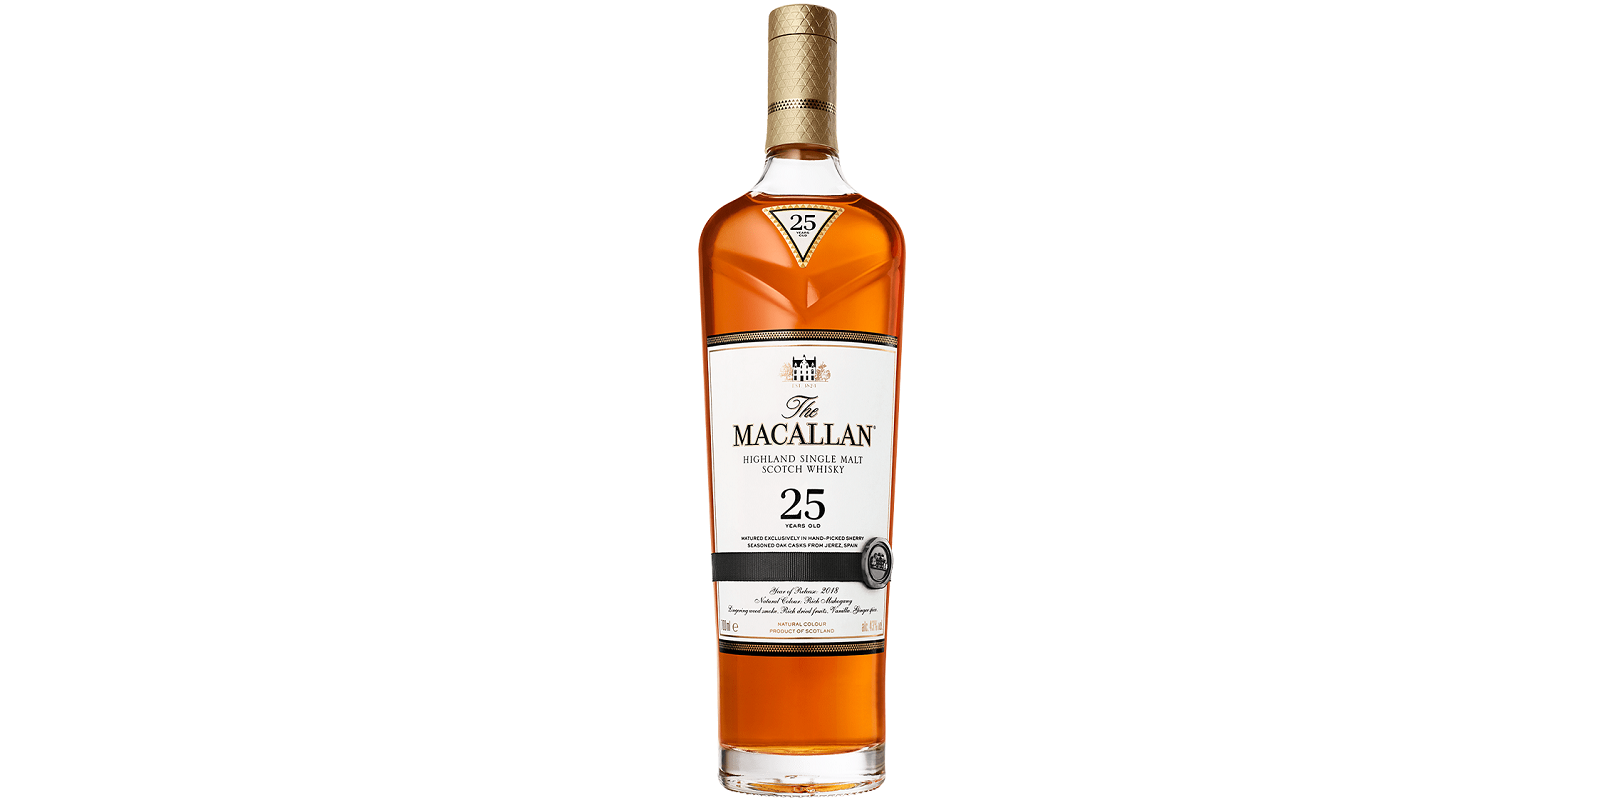 The Macallan Sherry Oak 25 Years Old